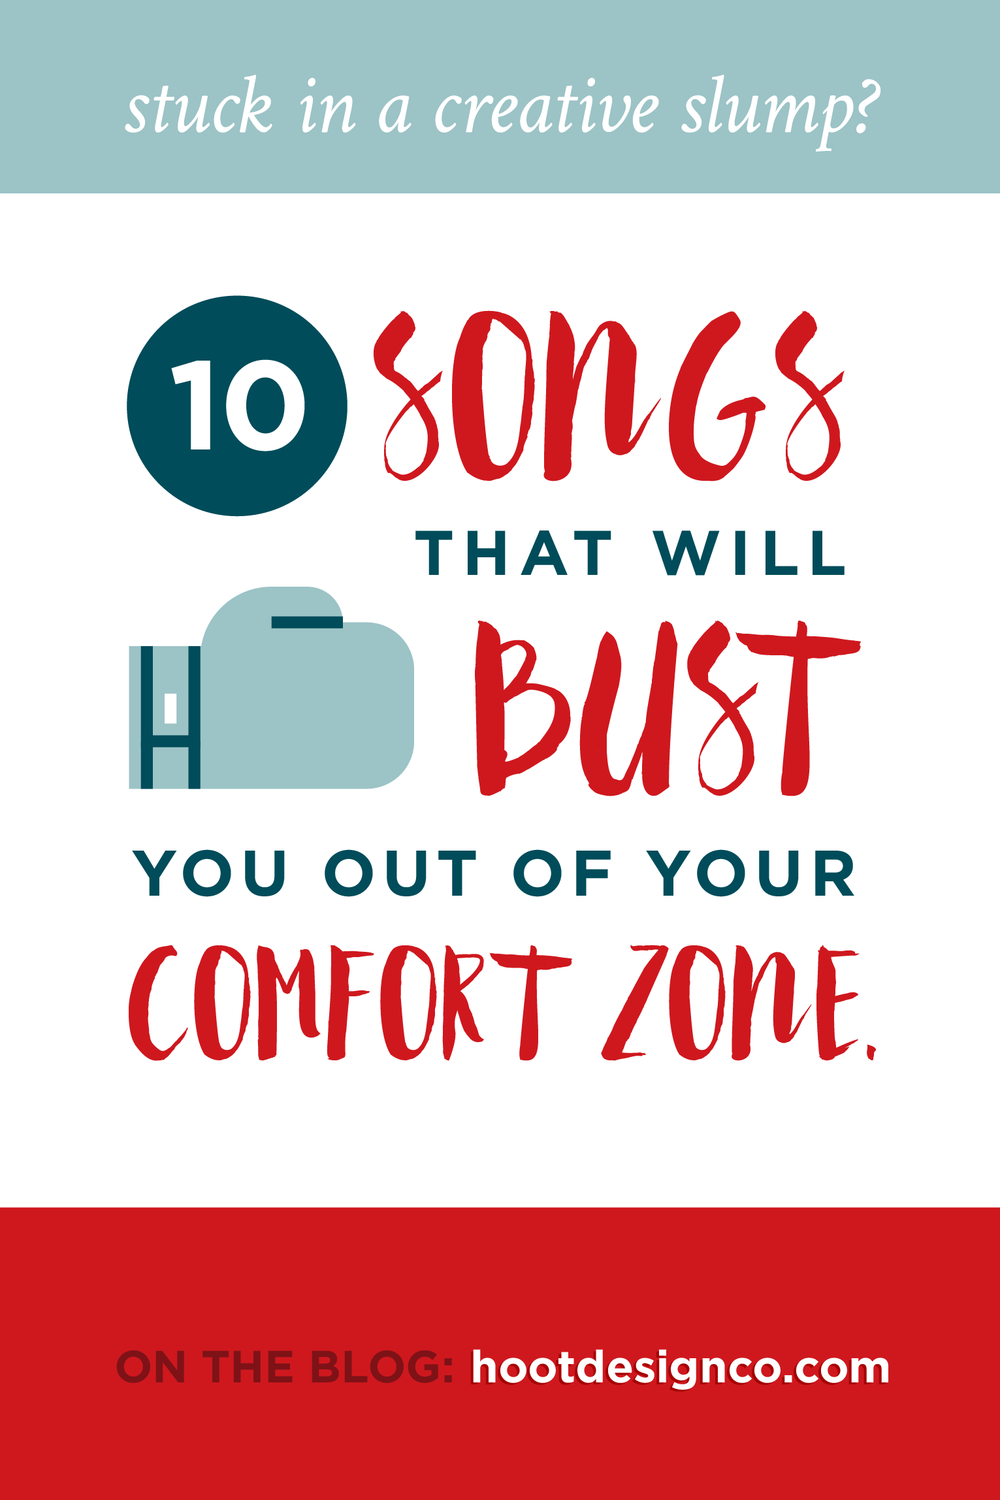 Stuck in a creative slump and need to mix it up? Need inspiration to finally push outside of the same old same old? These 10 songs are going to bust you out of your comfort zone like there's no tomorrow!